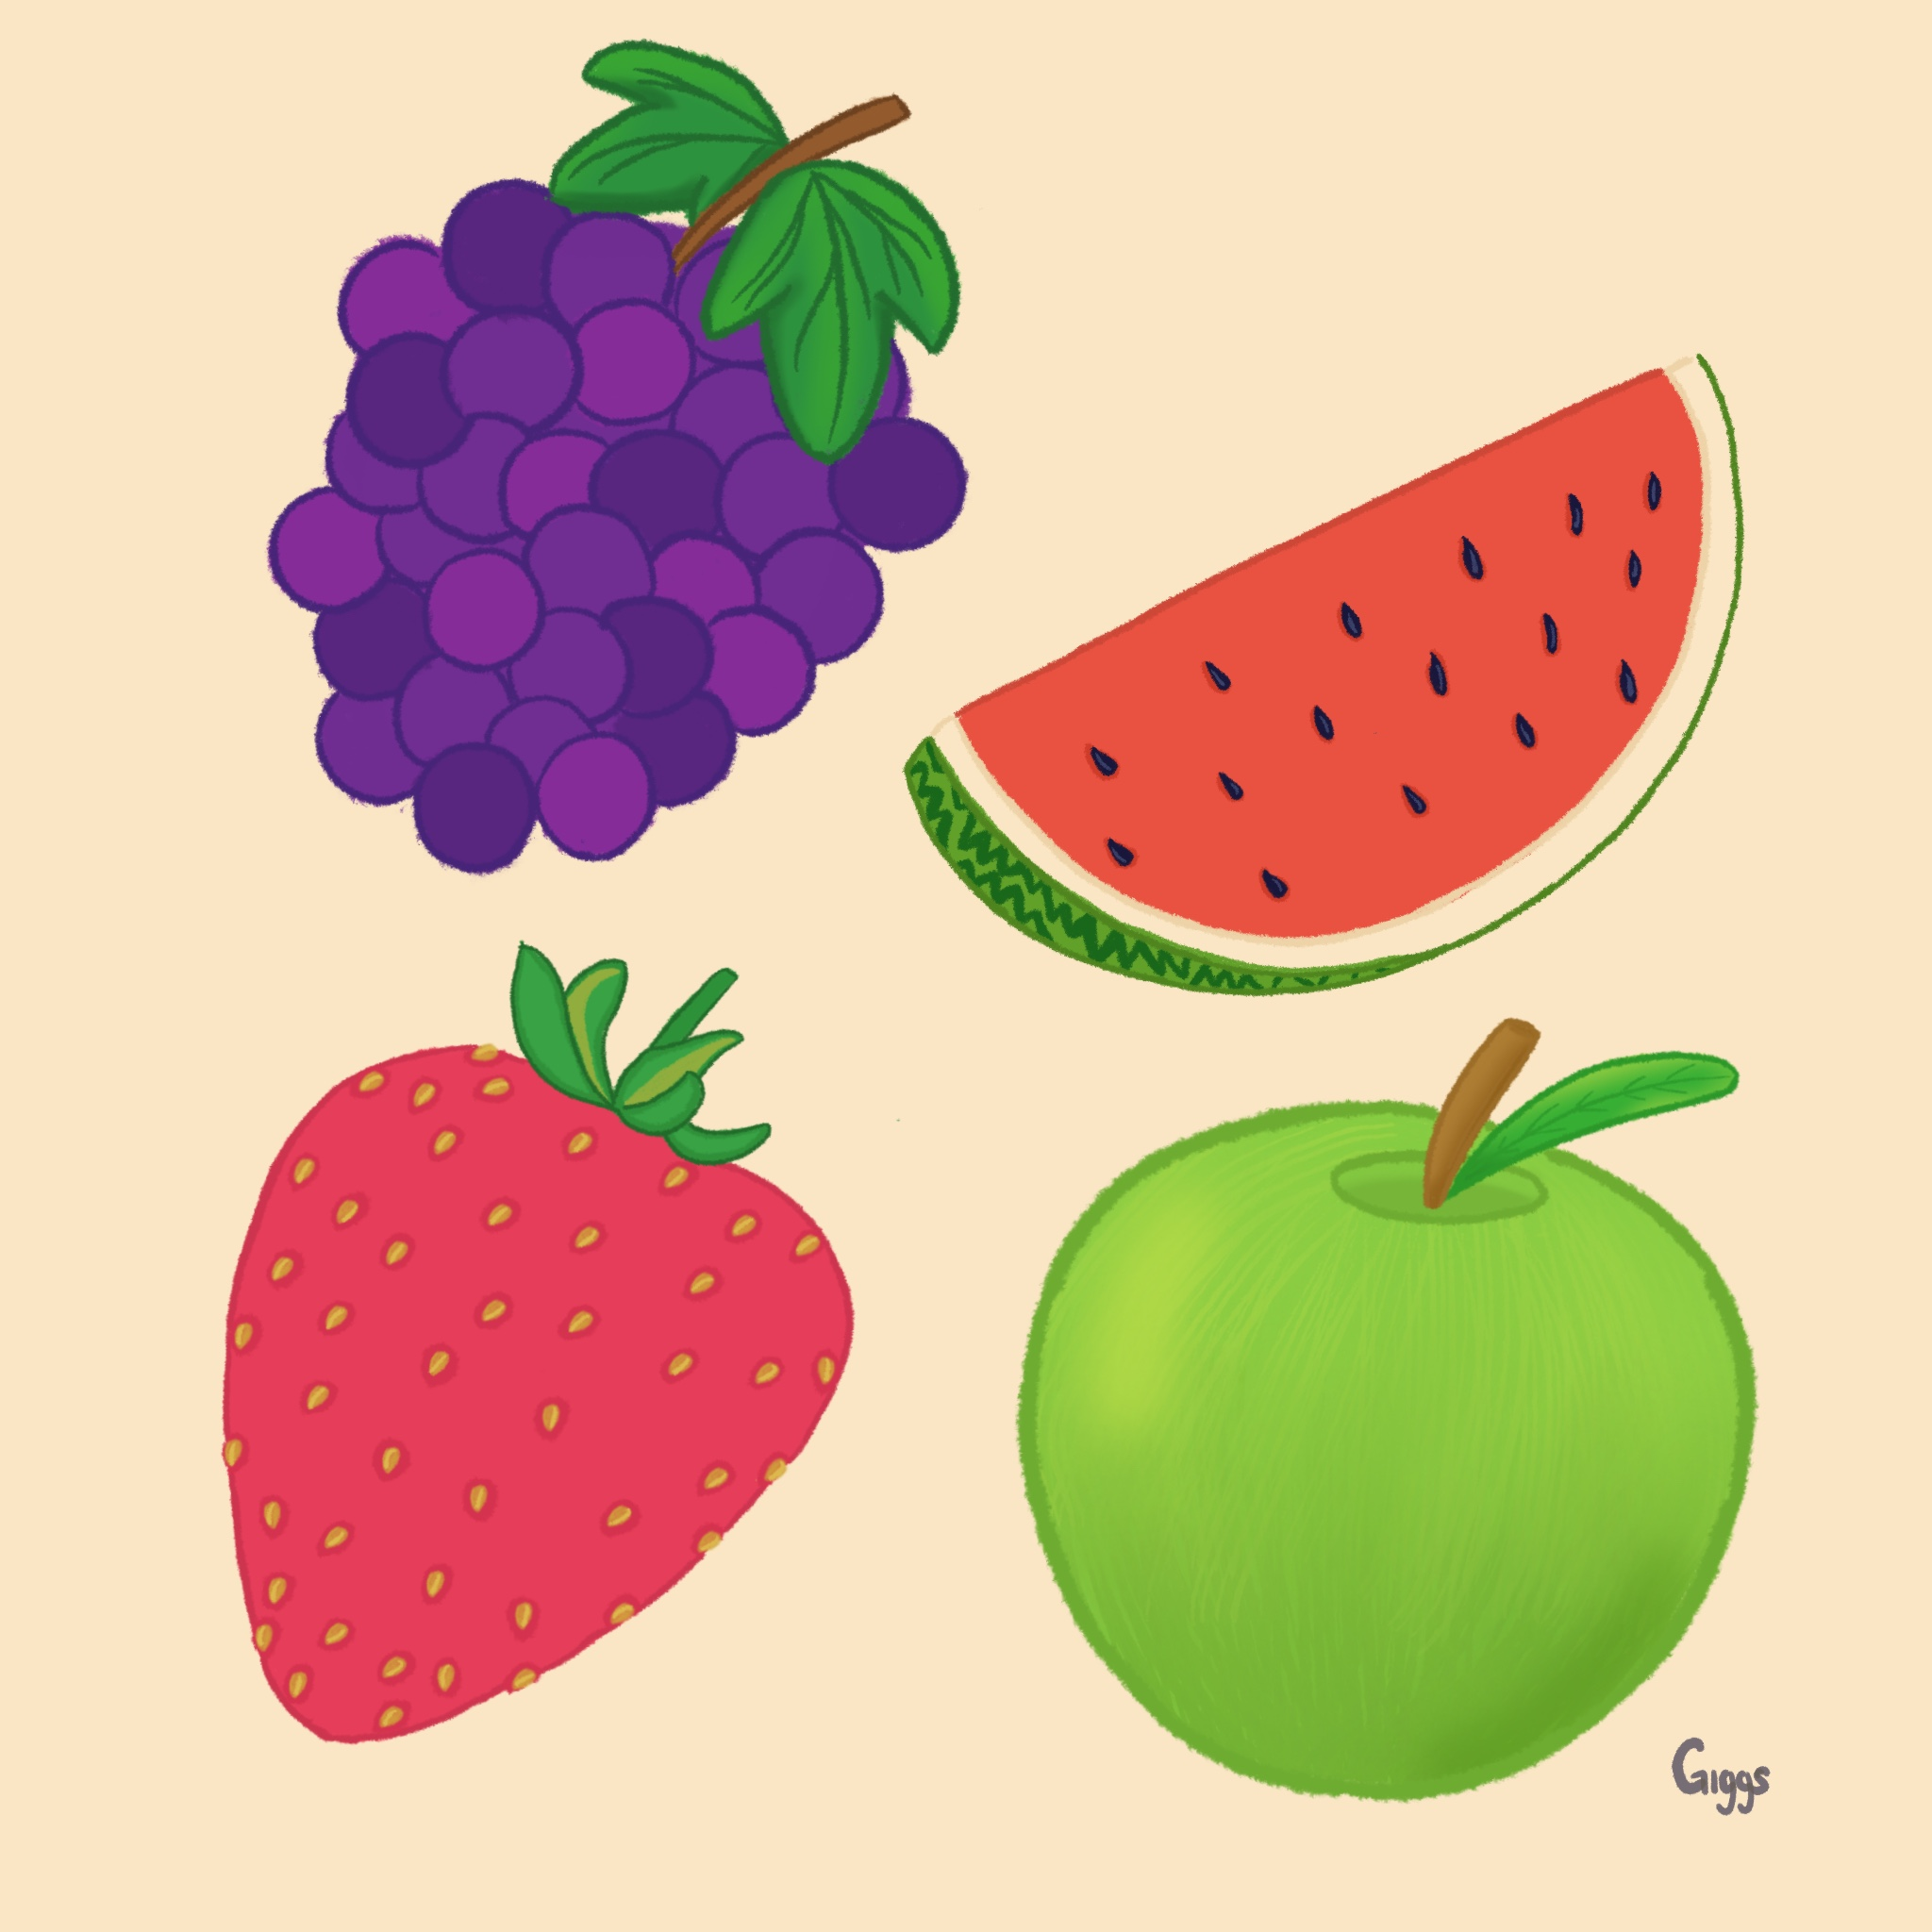 Day 21 of 100: Fruit